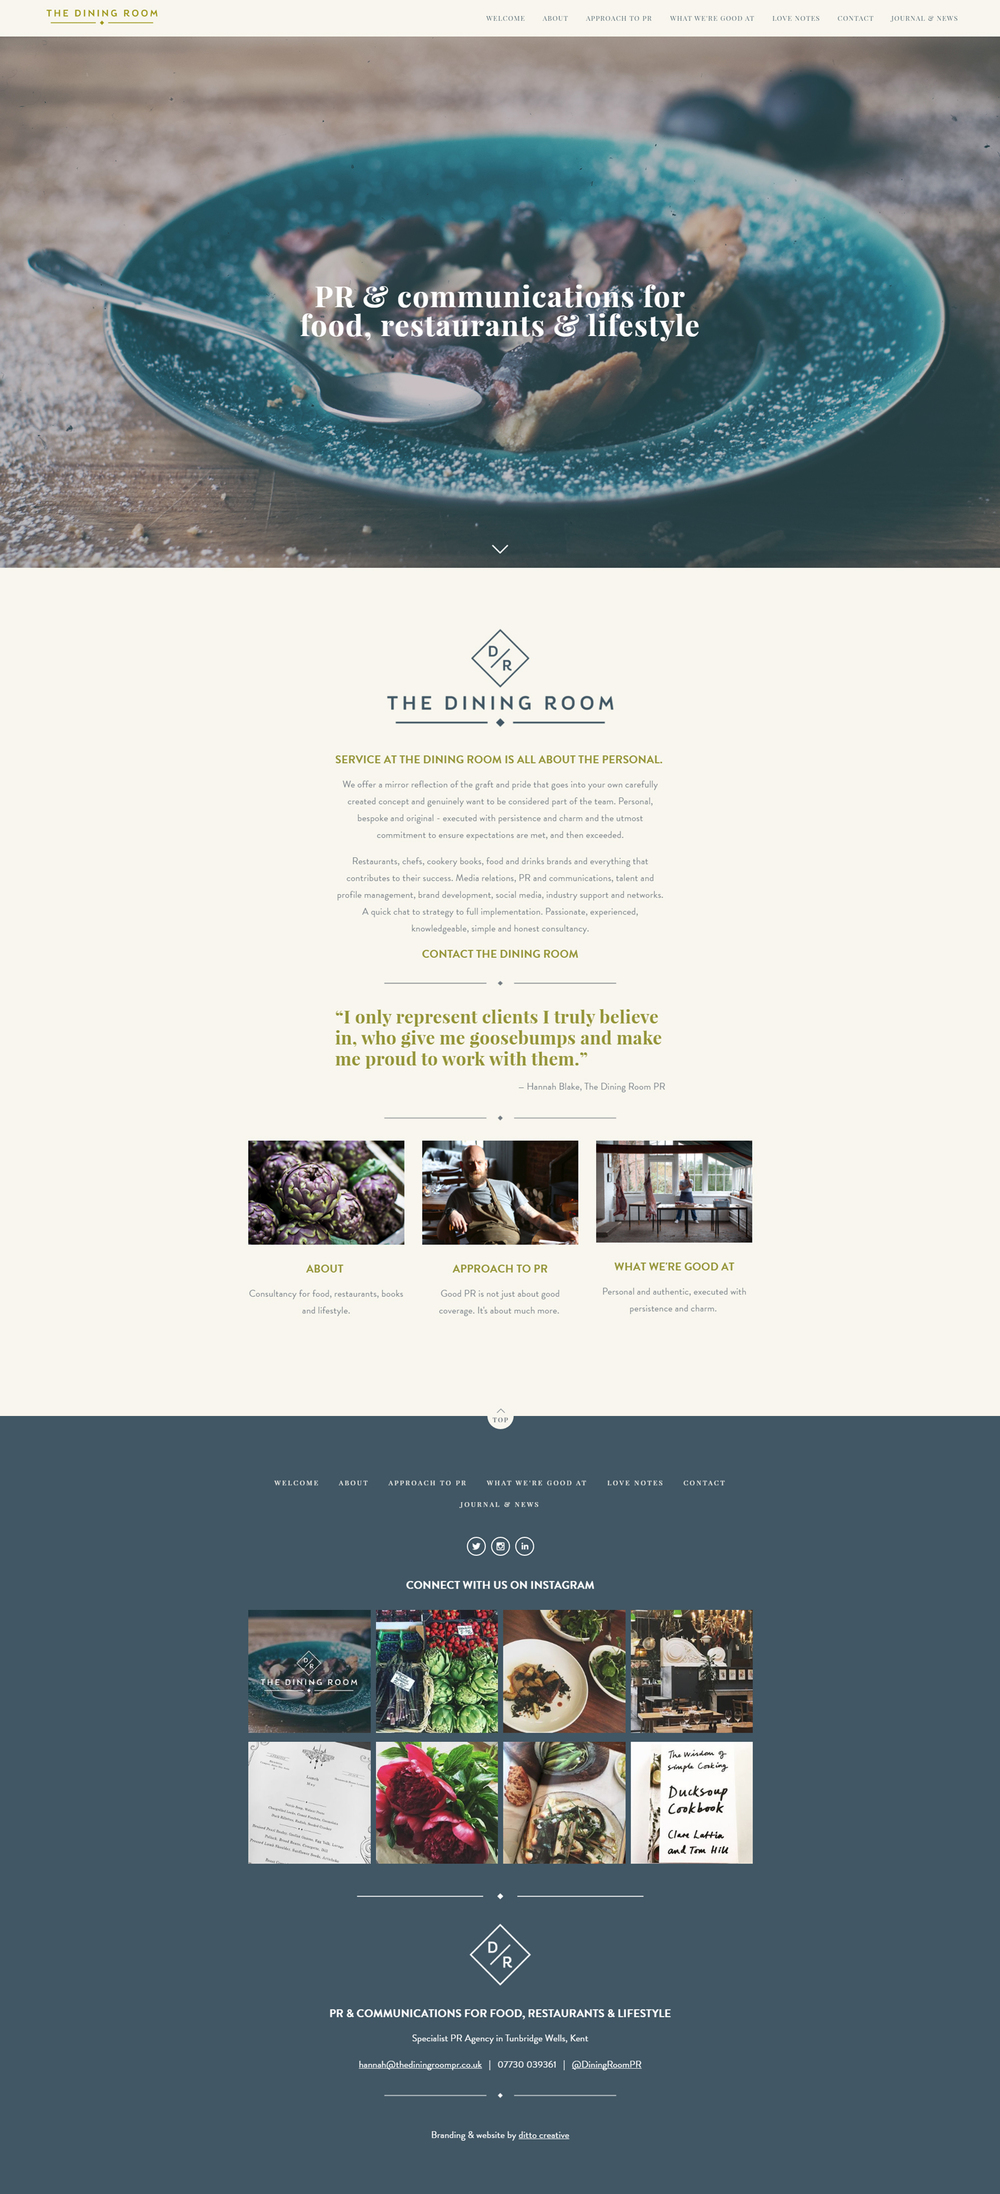 The Dining Room PR website design by Ditto creative, branding agency kent, squarespace website designer